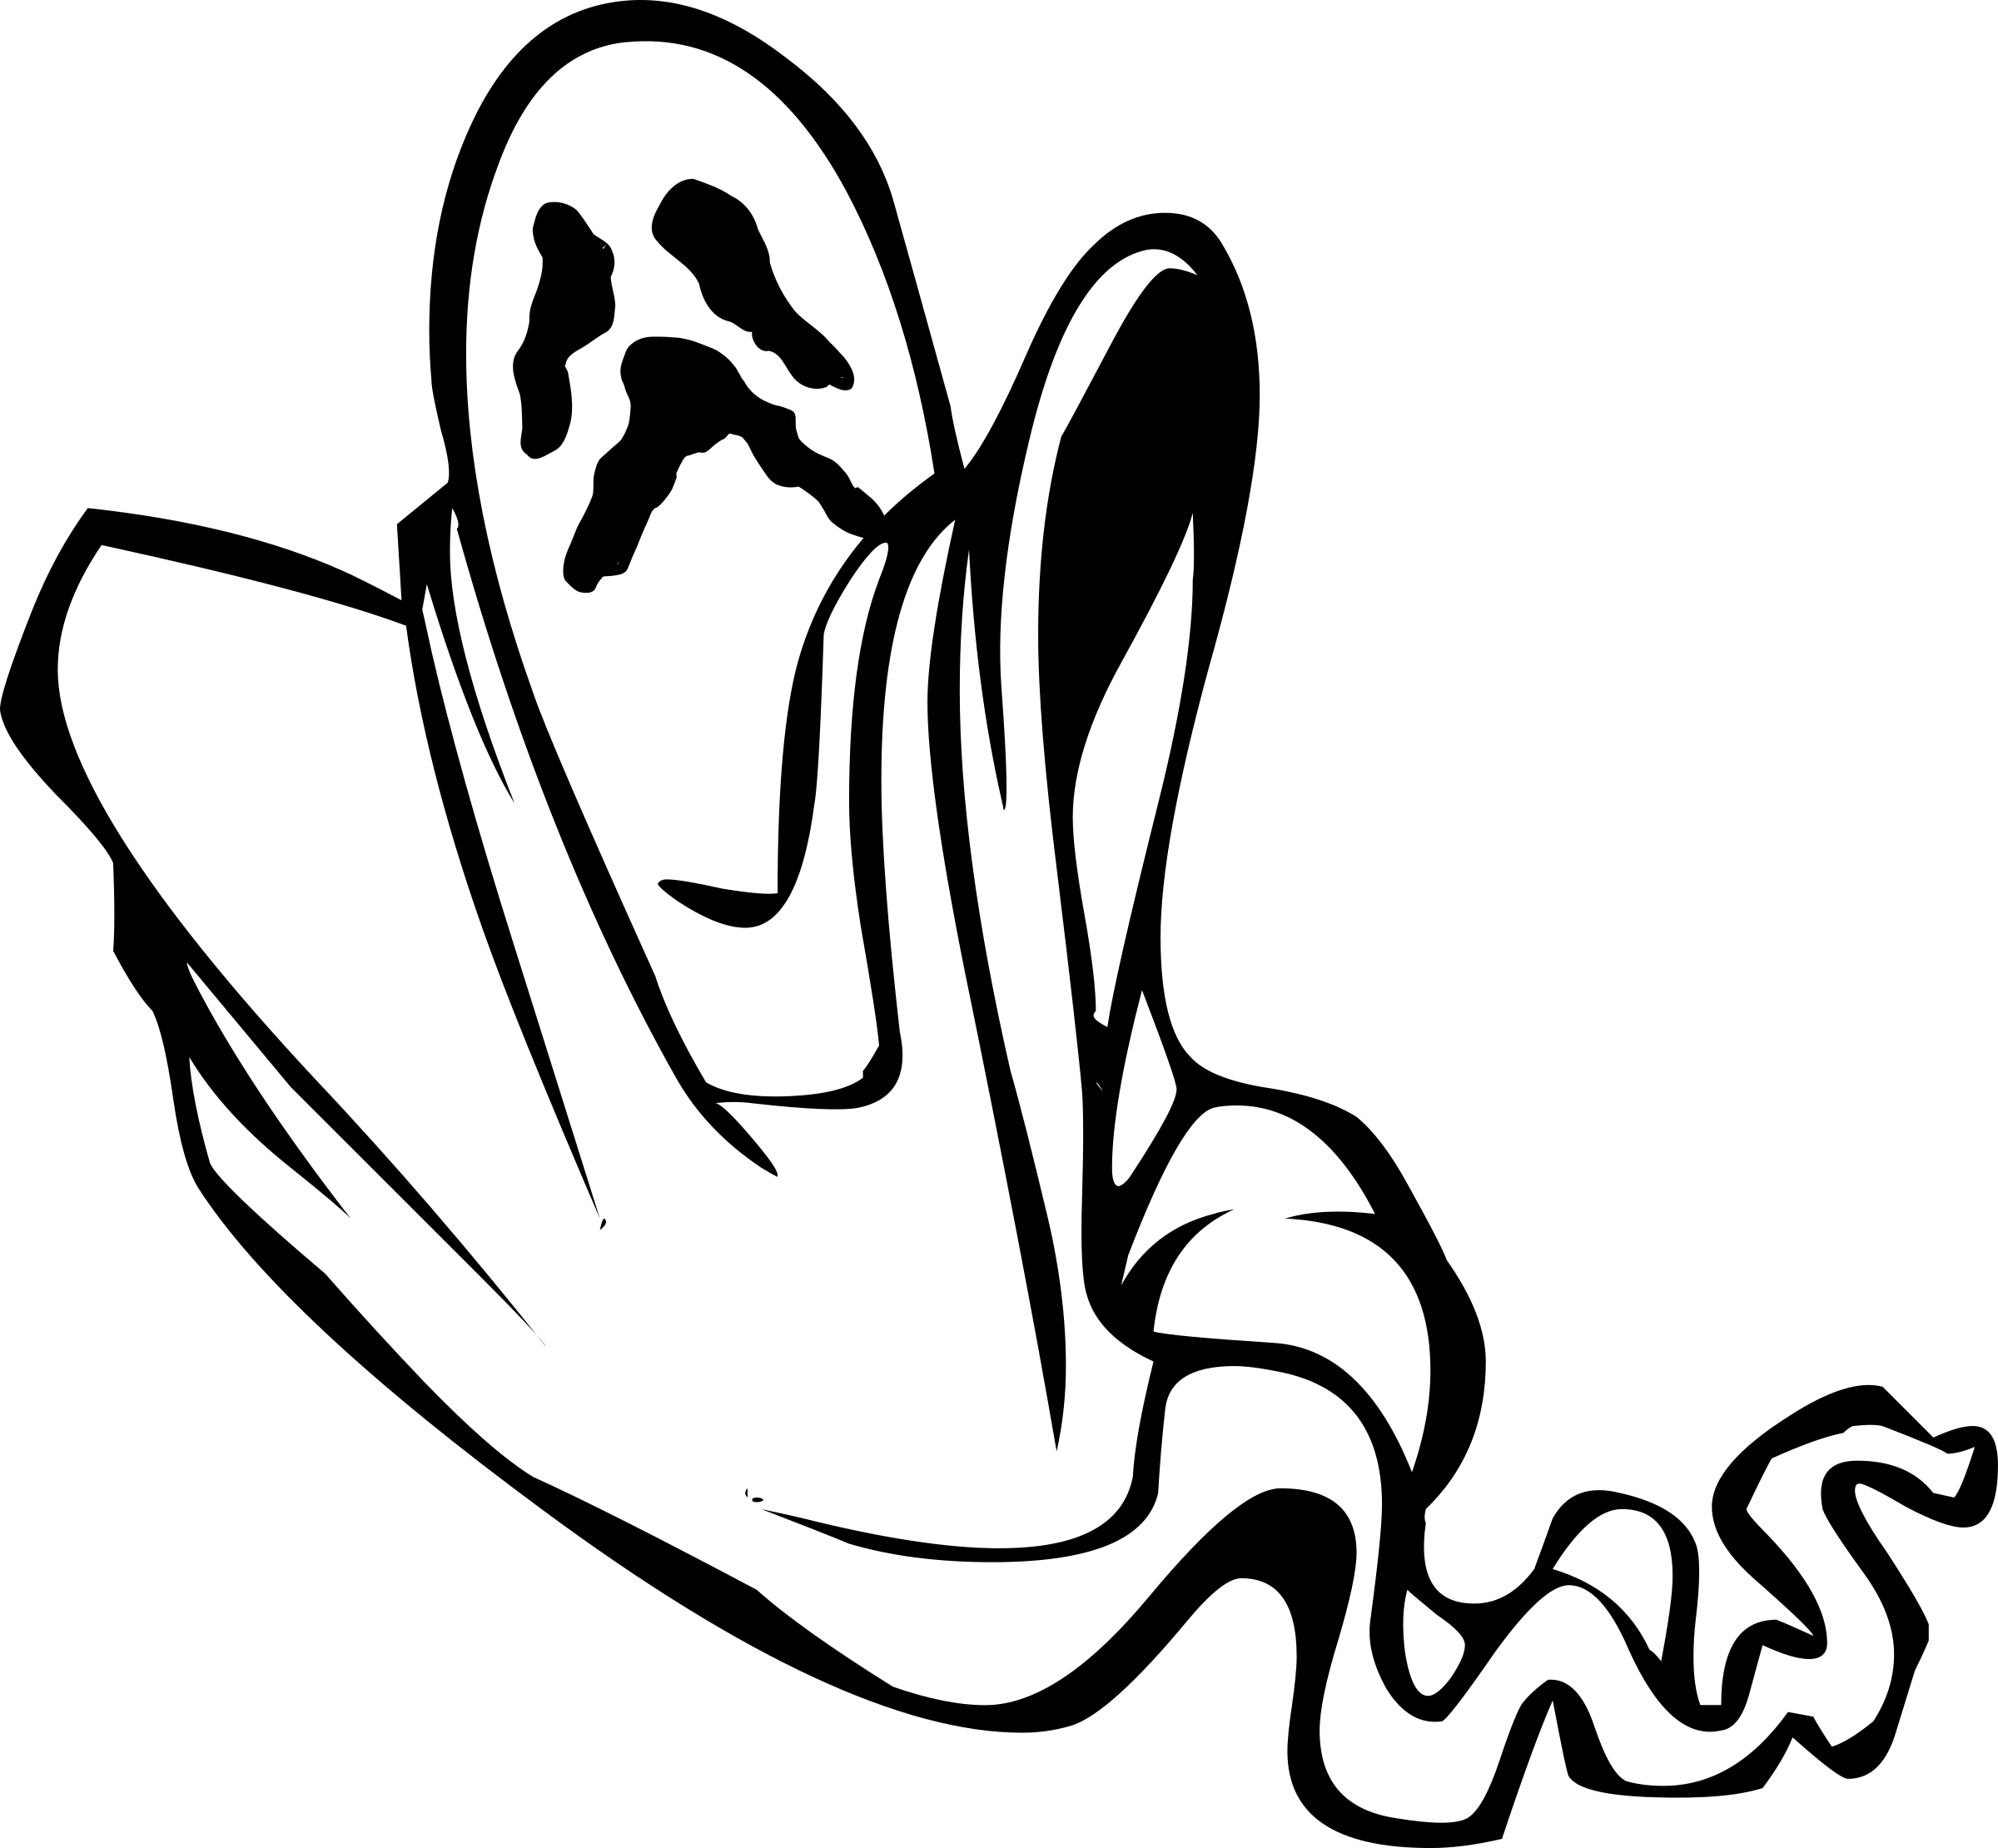 Ghost Hd Scary Clipart Collection Clip Art Free Unlimited.